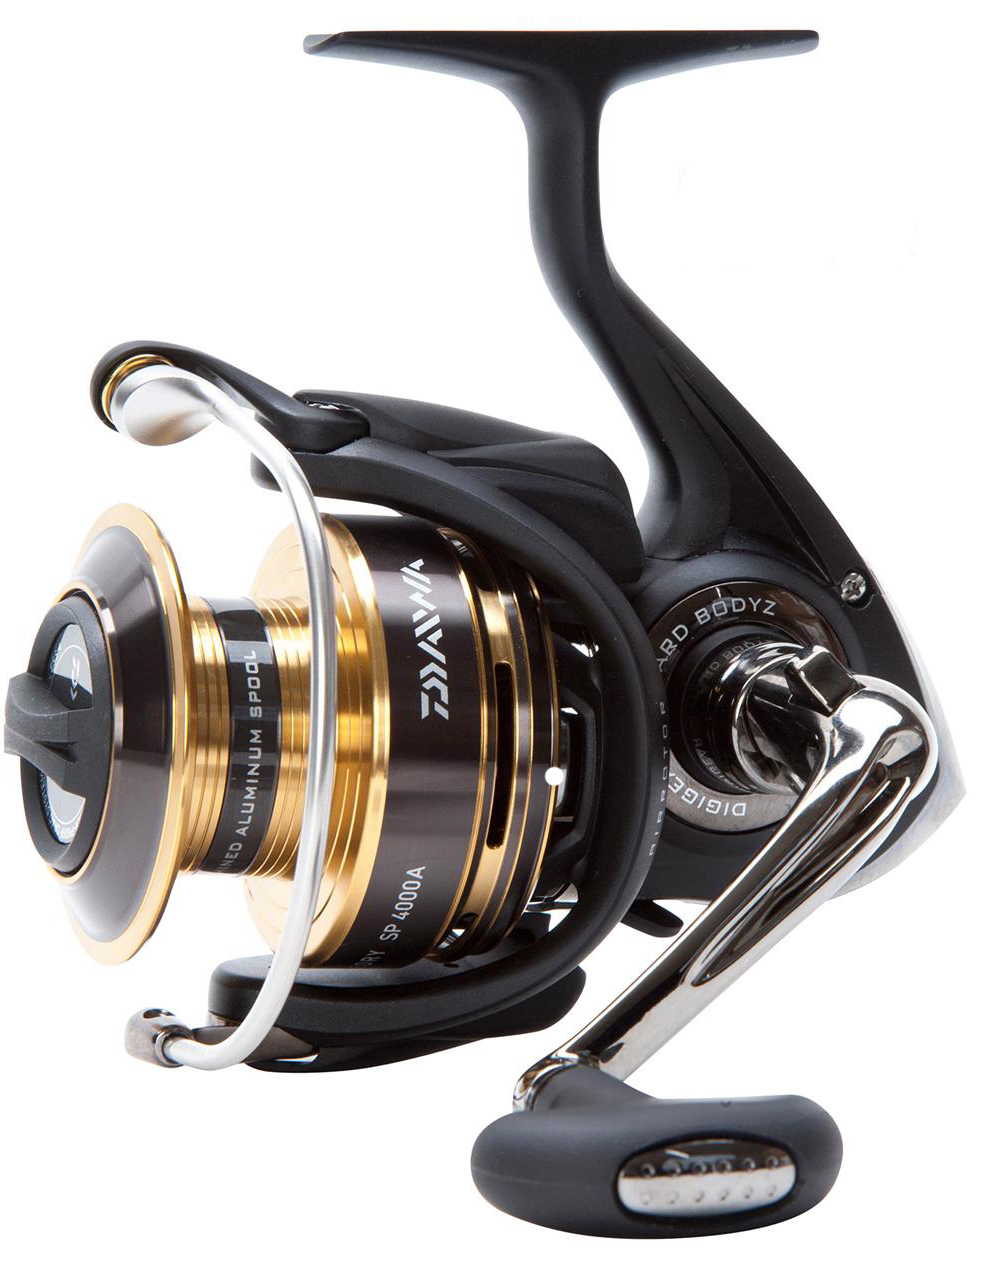 Daiwa Ss Tournament Whisker Gold Reels 12831 moreover Daiwa Emcast Br Reels 12840 as well Fishing Trip Lifetime Himalayan Golden Mahseer further Watch additionally Daiwa Saltist Heavy Action Spinning Reel. on daiwa fishing reels